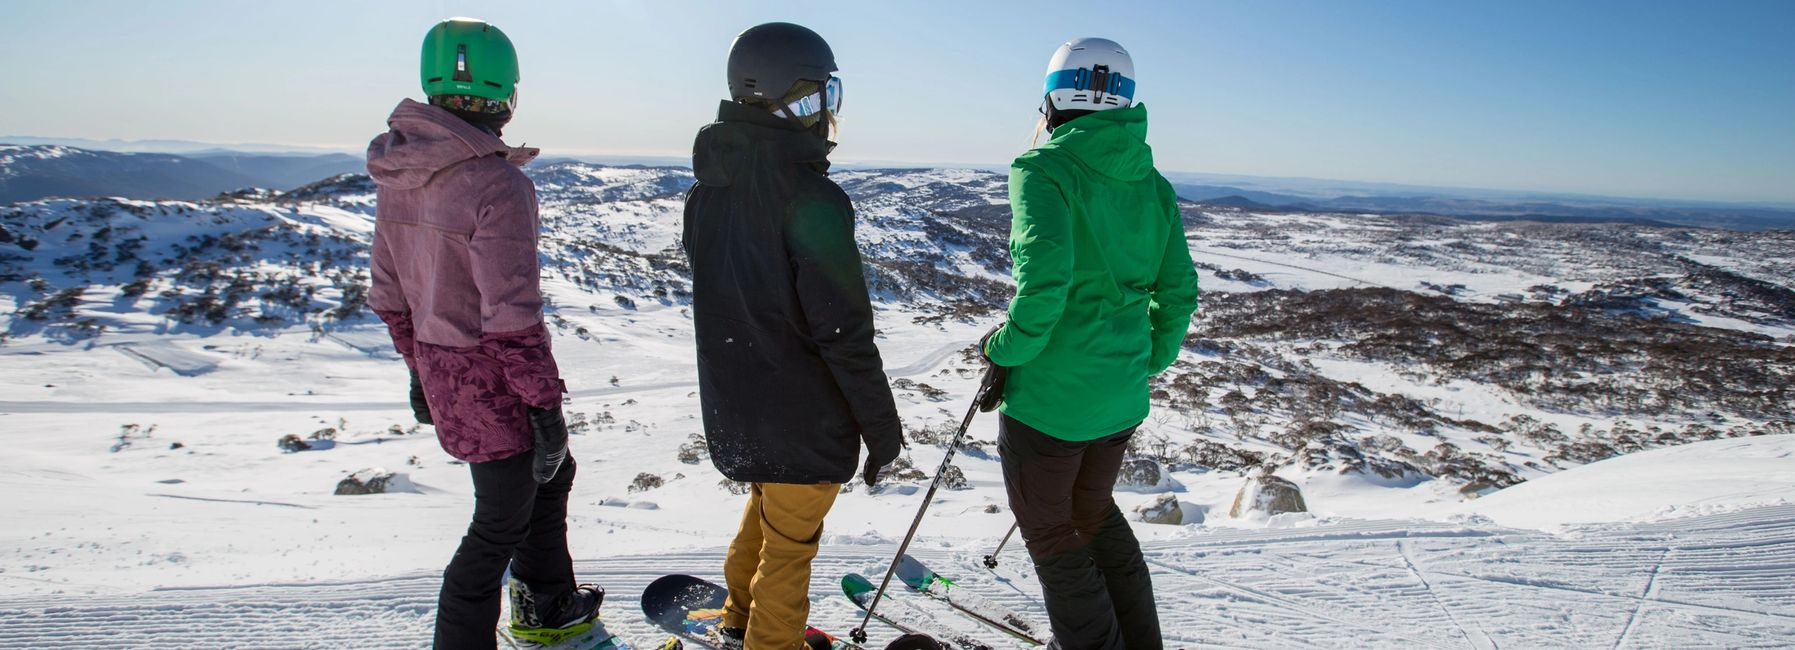 Looking out over the Perisher resort